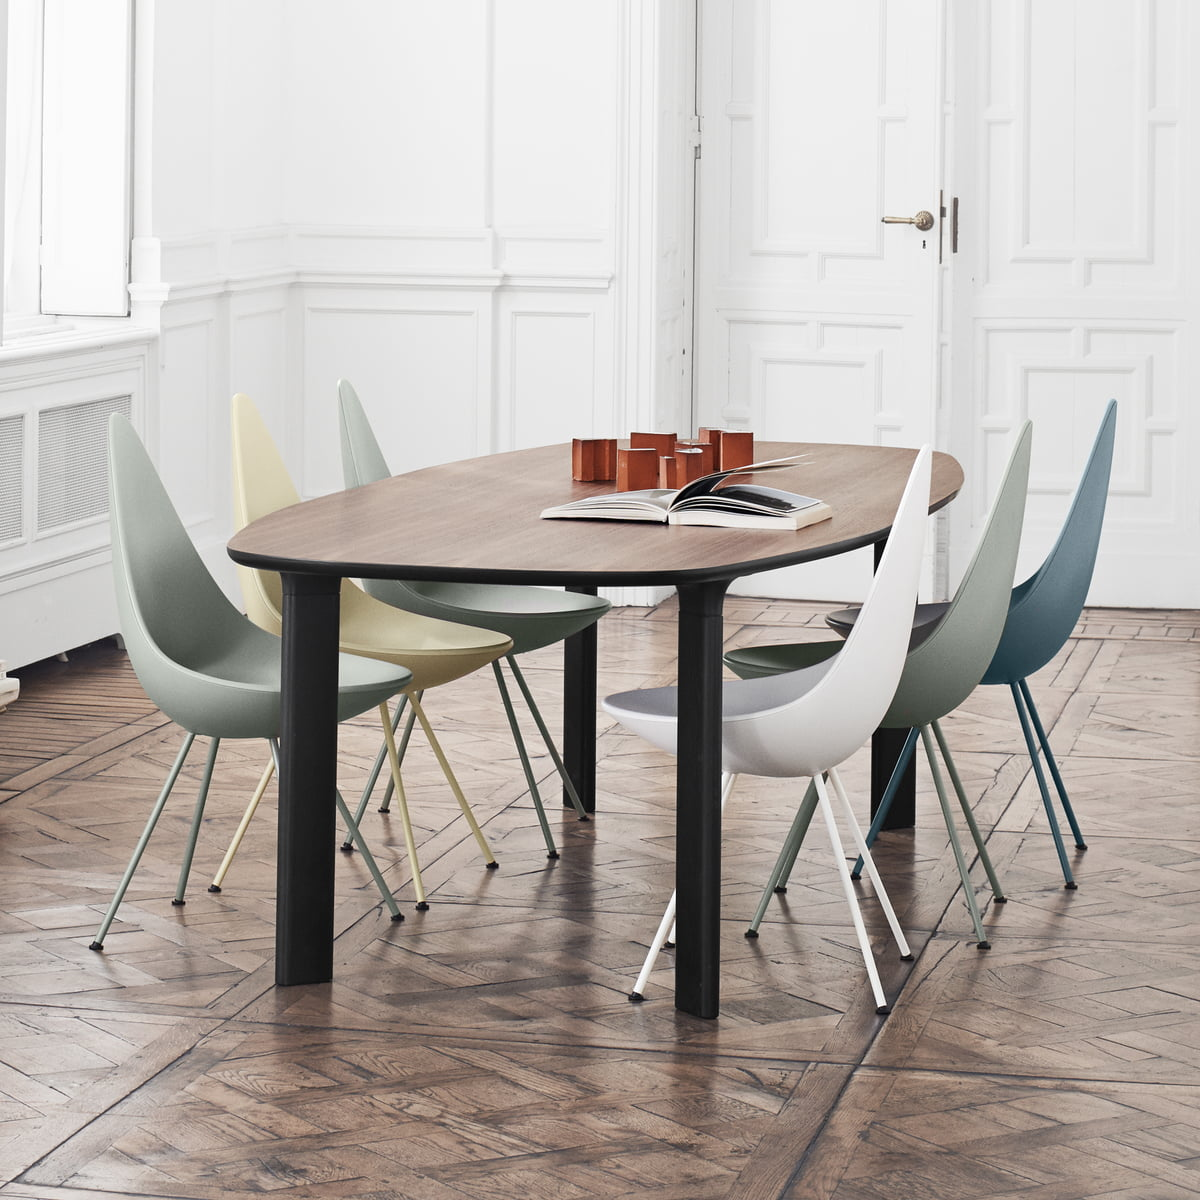 100 dining table walnut span table dining table gus. Black Bedroom Furniture Sets. Home Design Ideas